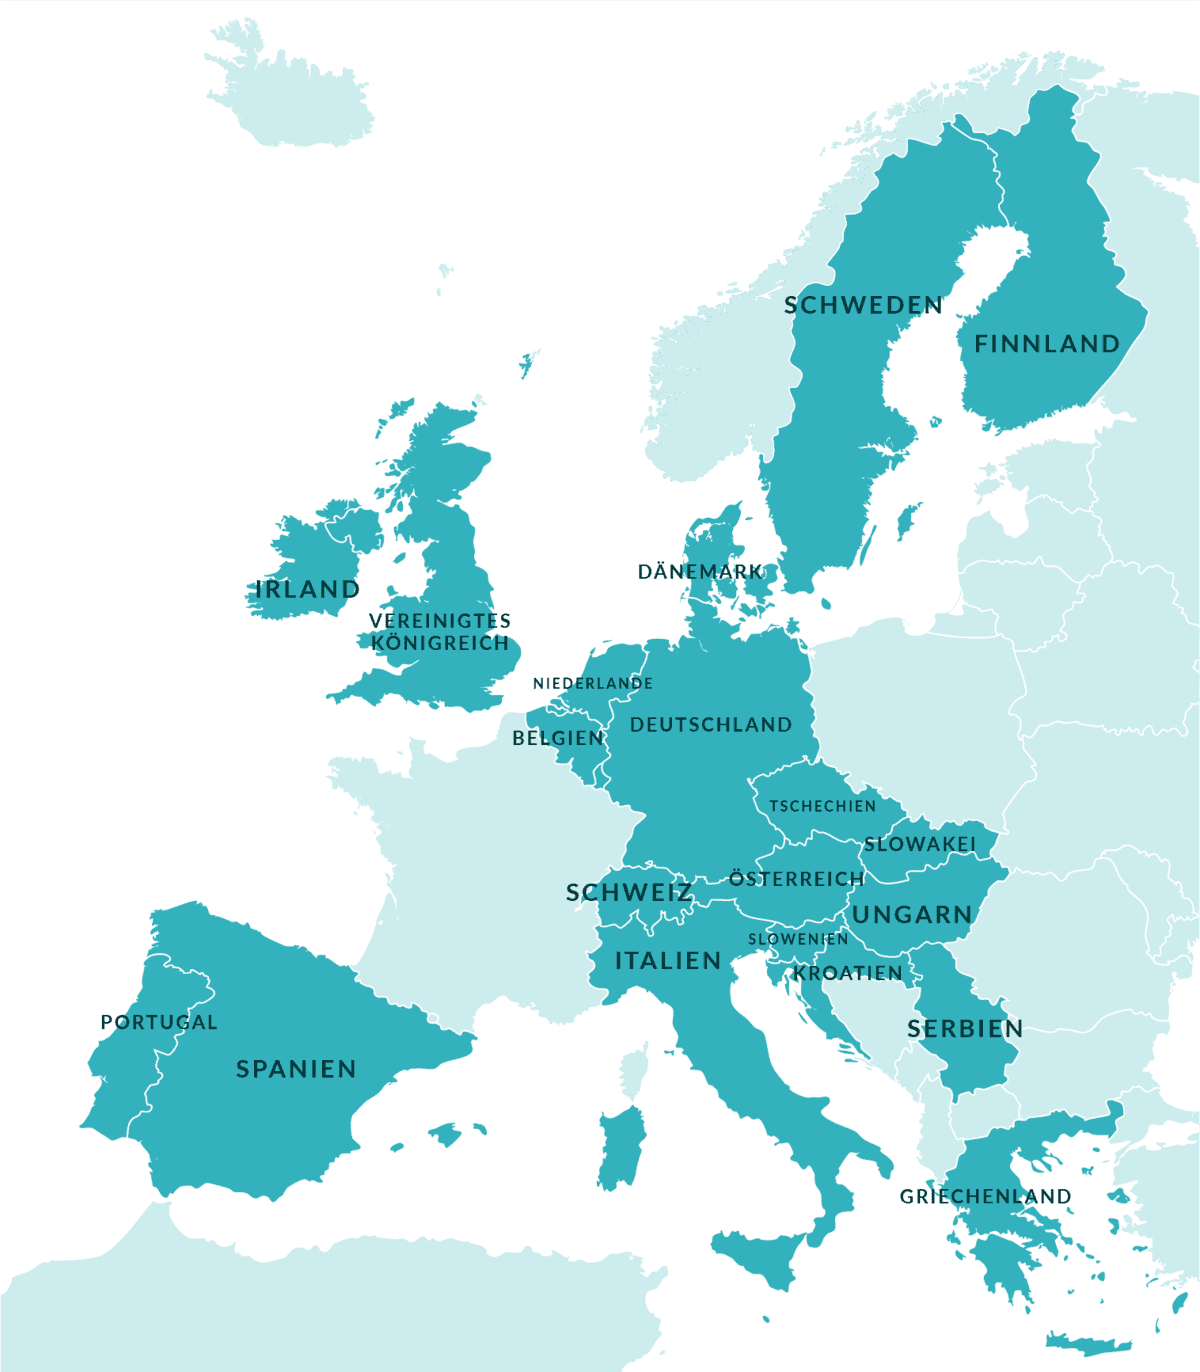 Europe map with L.E.A.D.ers :: Map of Europe. Most countries are colored dark green-blue, representing countries with L.E.A.D. partners.